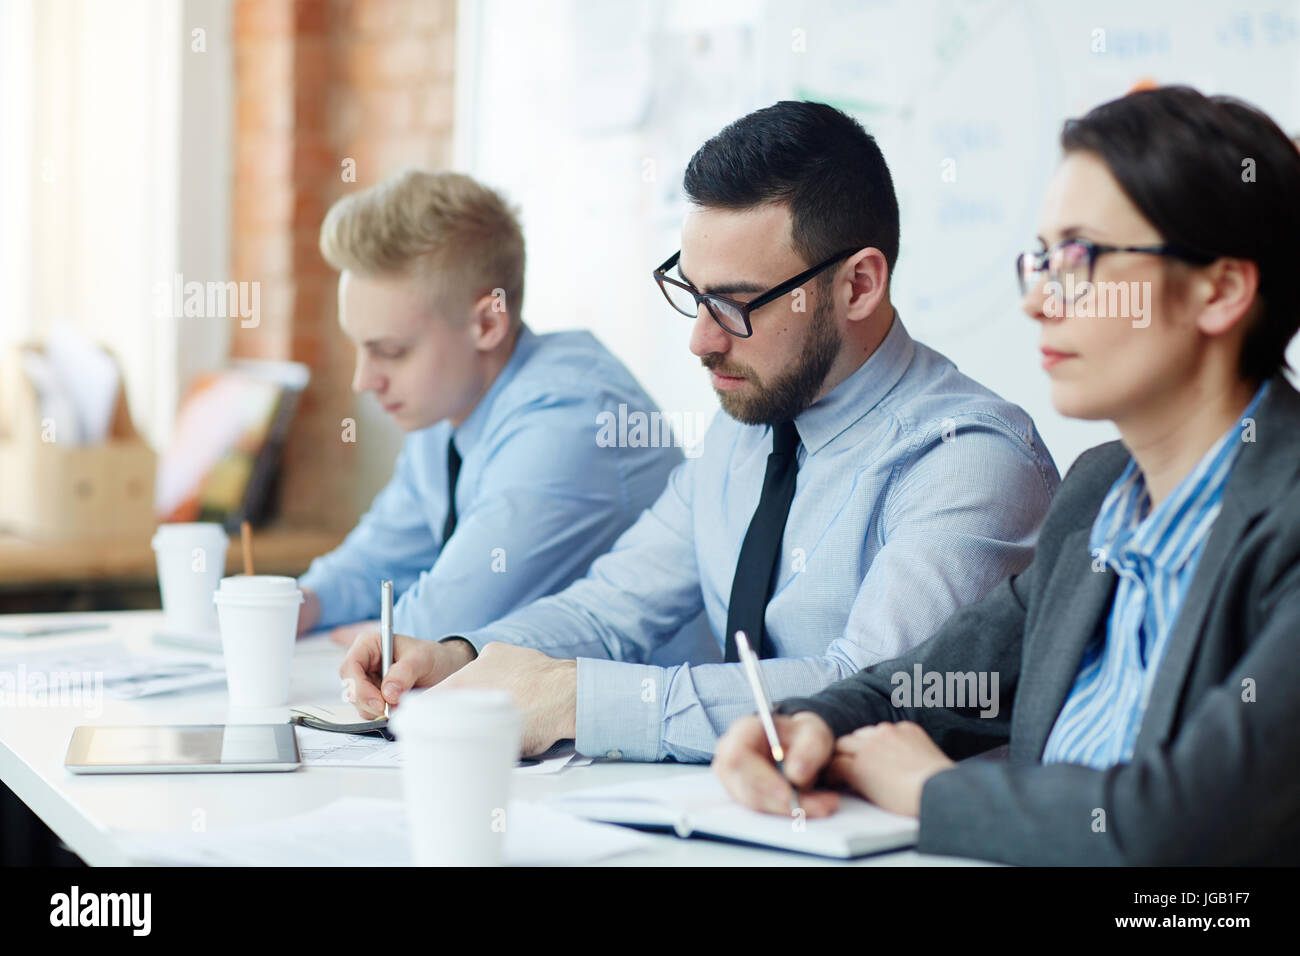 Wrting down ideas - Stock Image